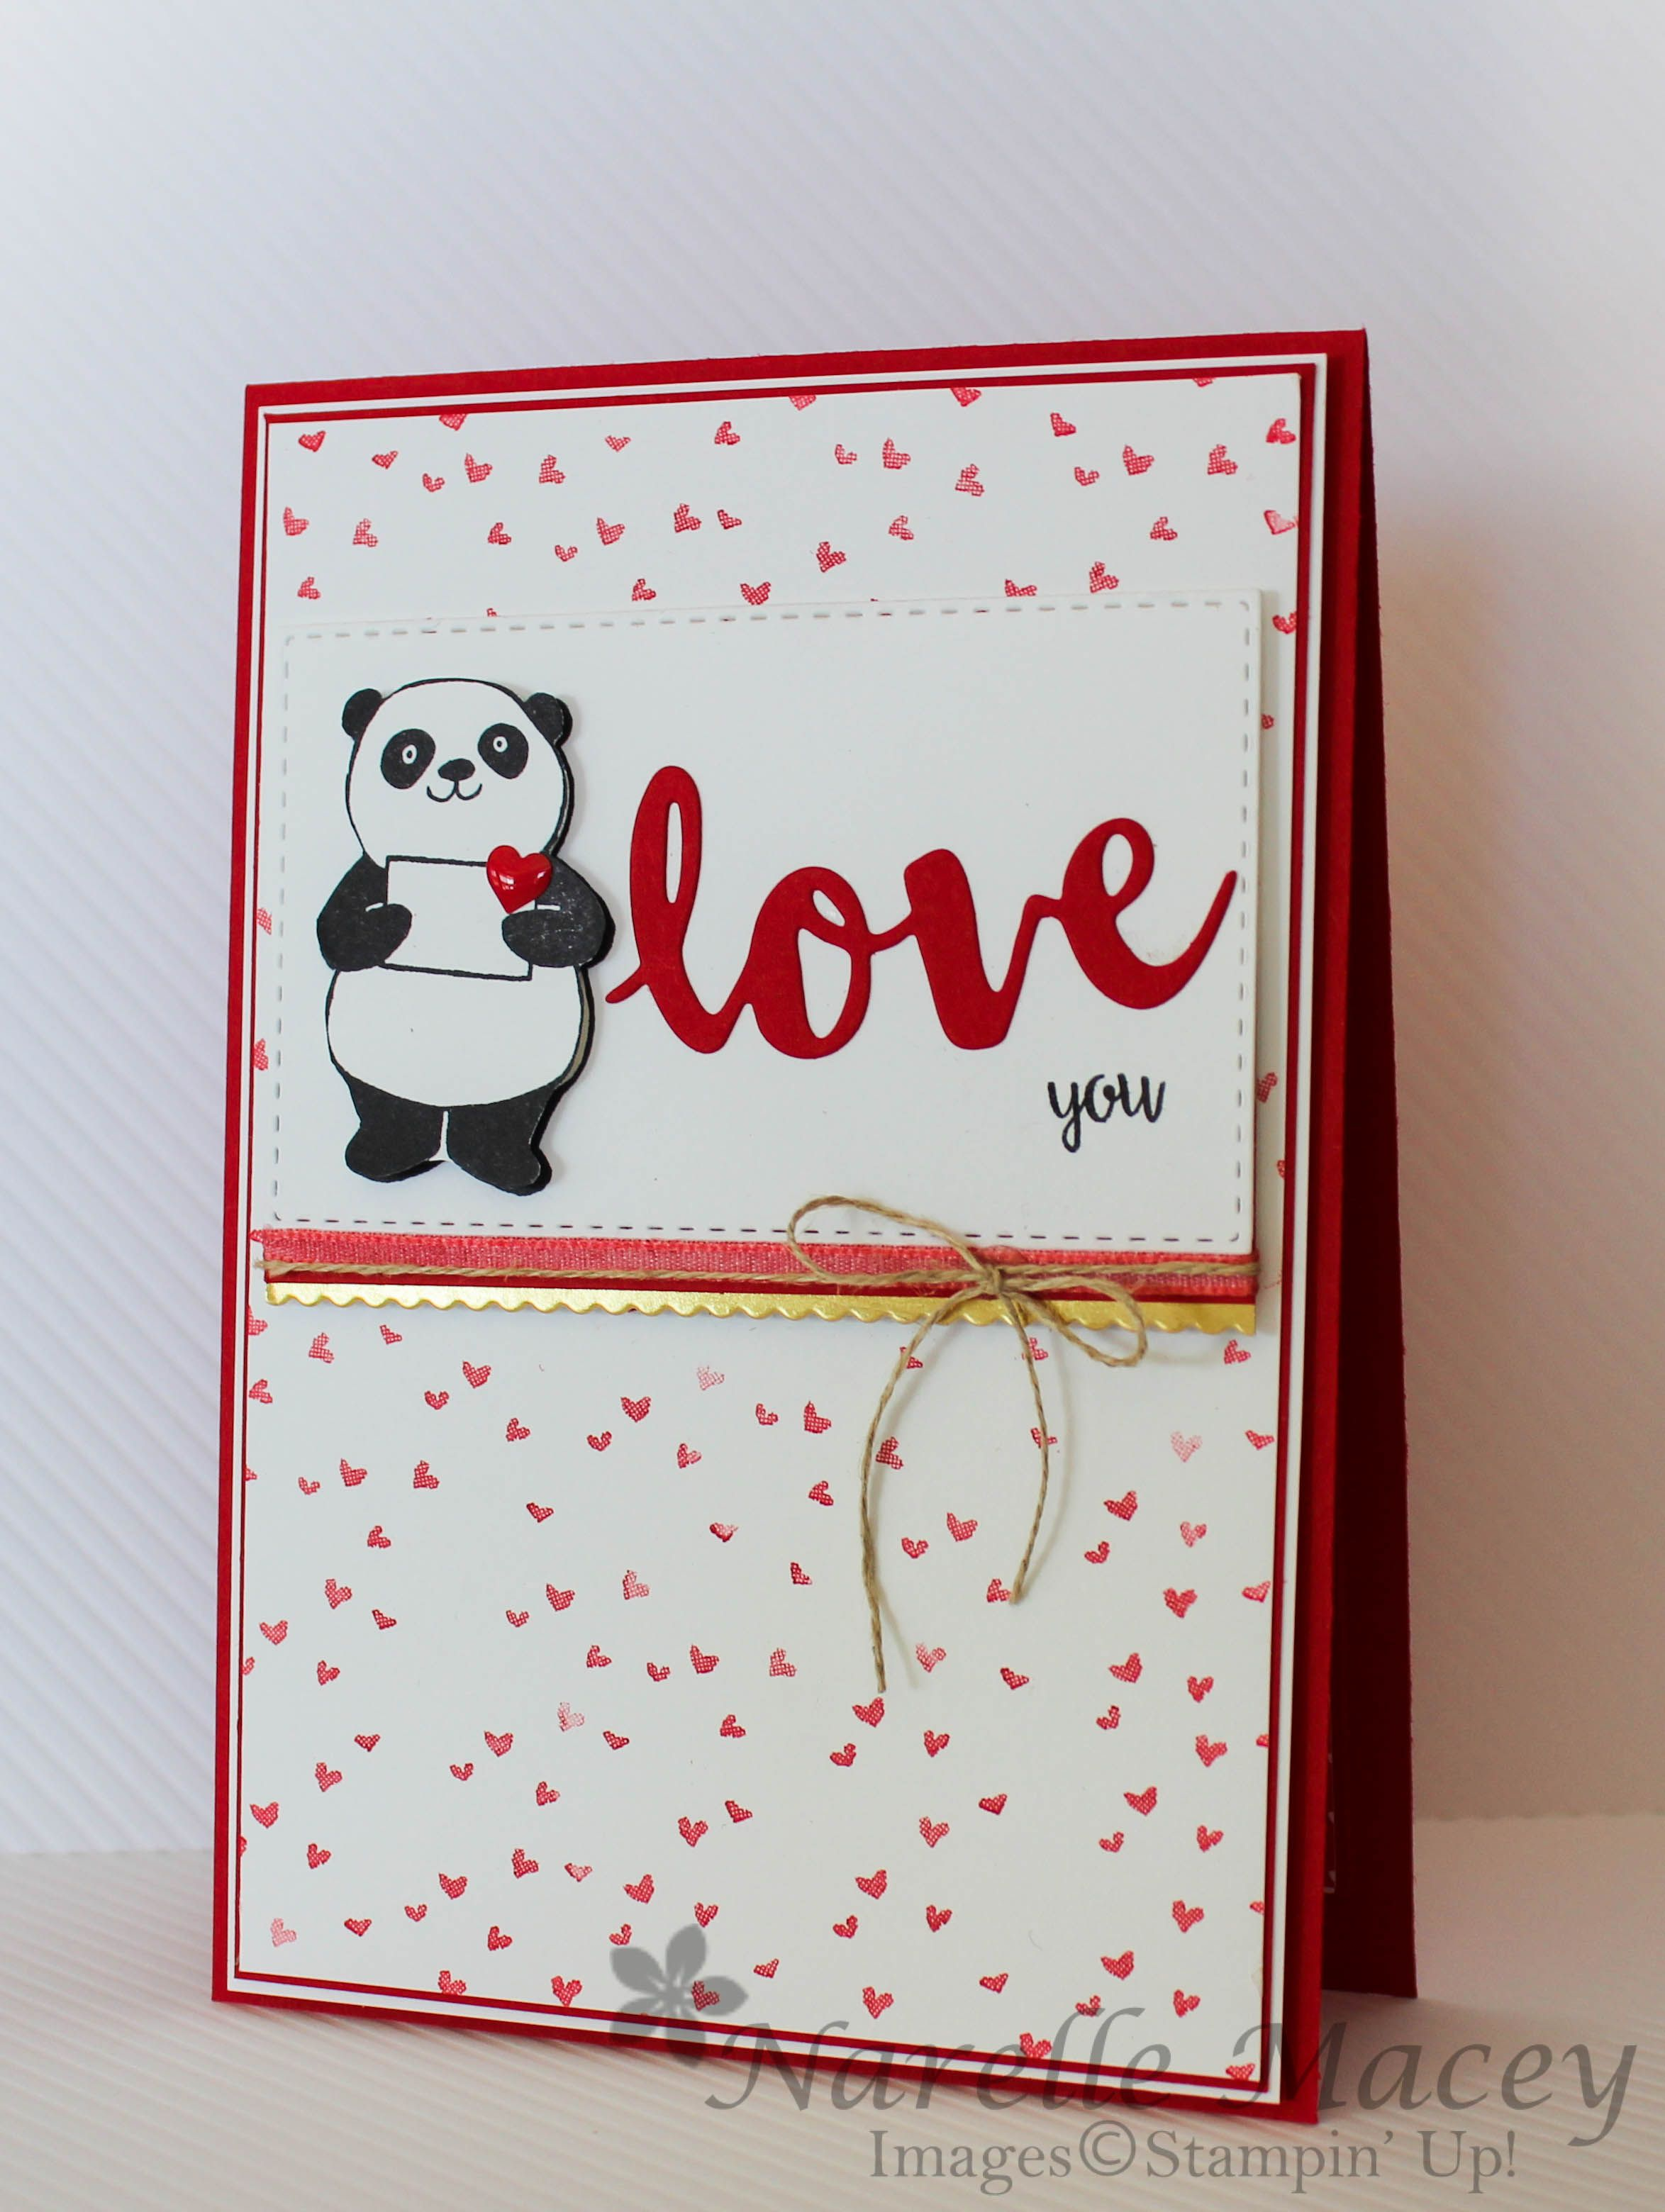 Love This Little Panda From The Panda Party Stamp Set From Stampin